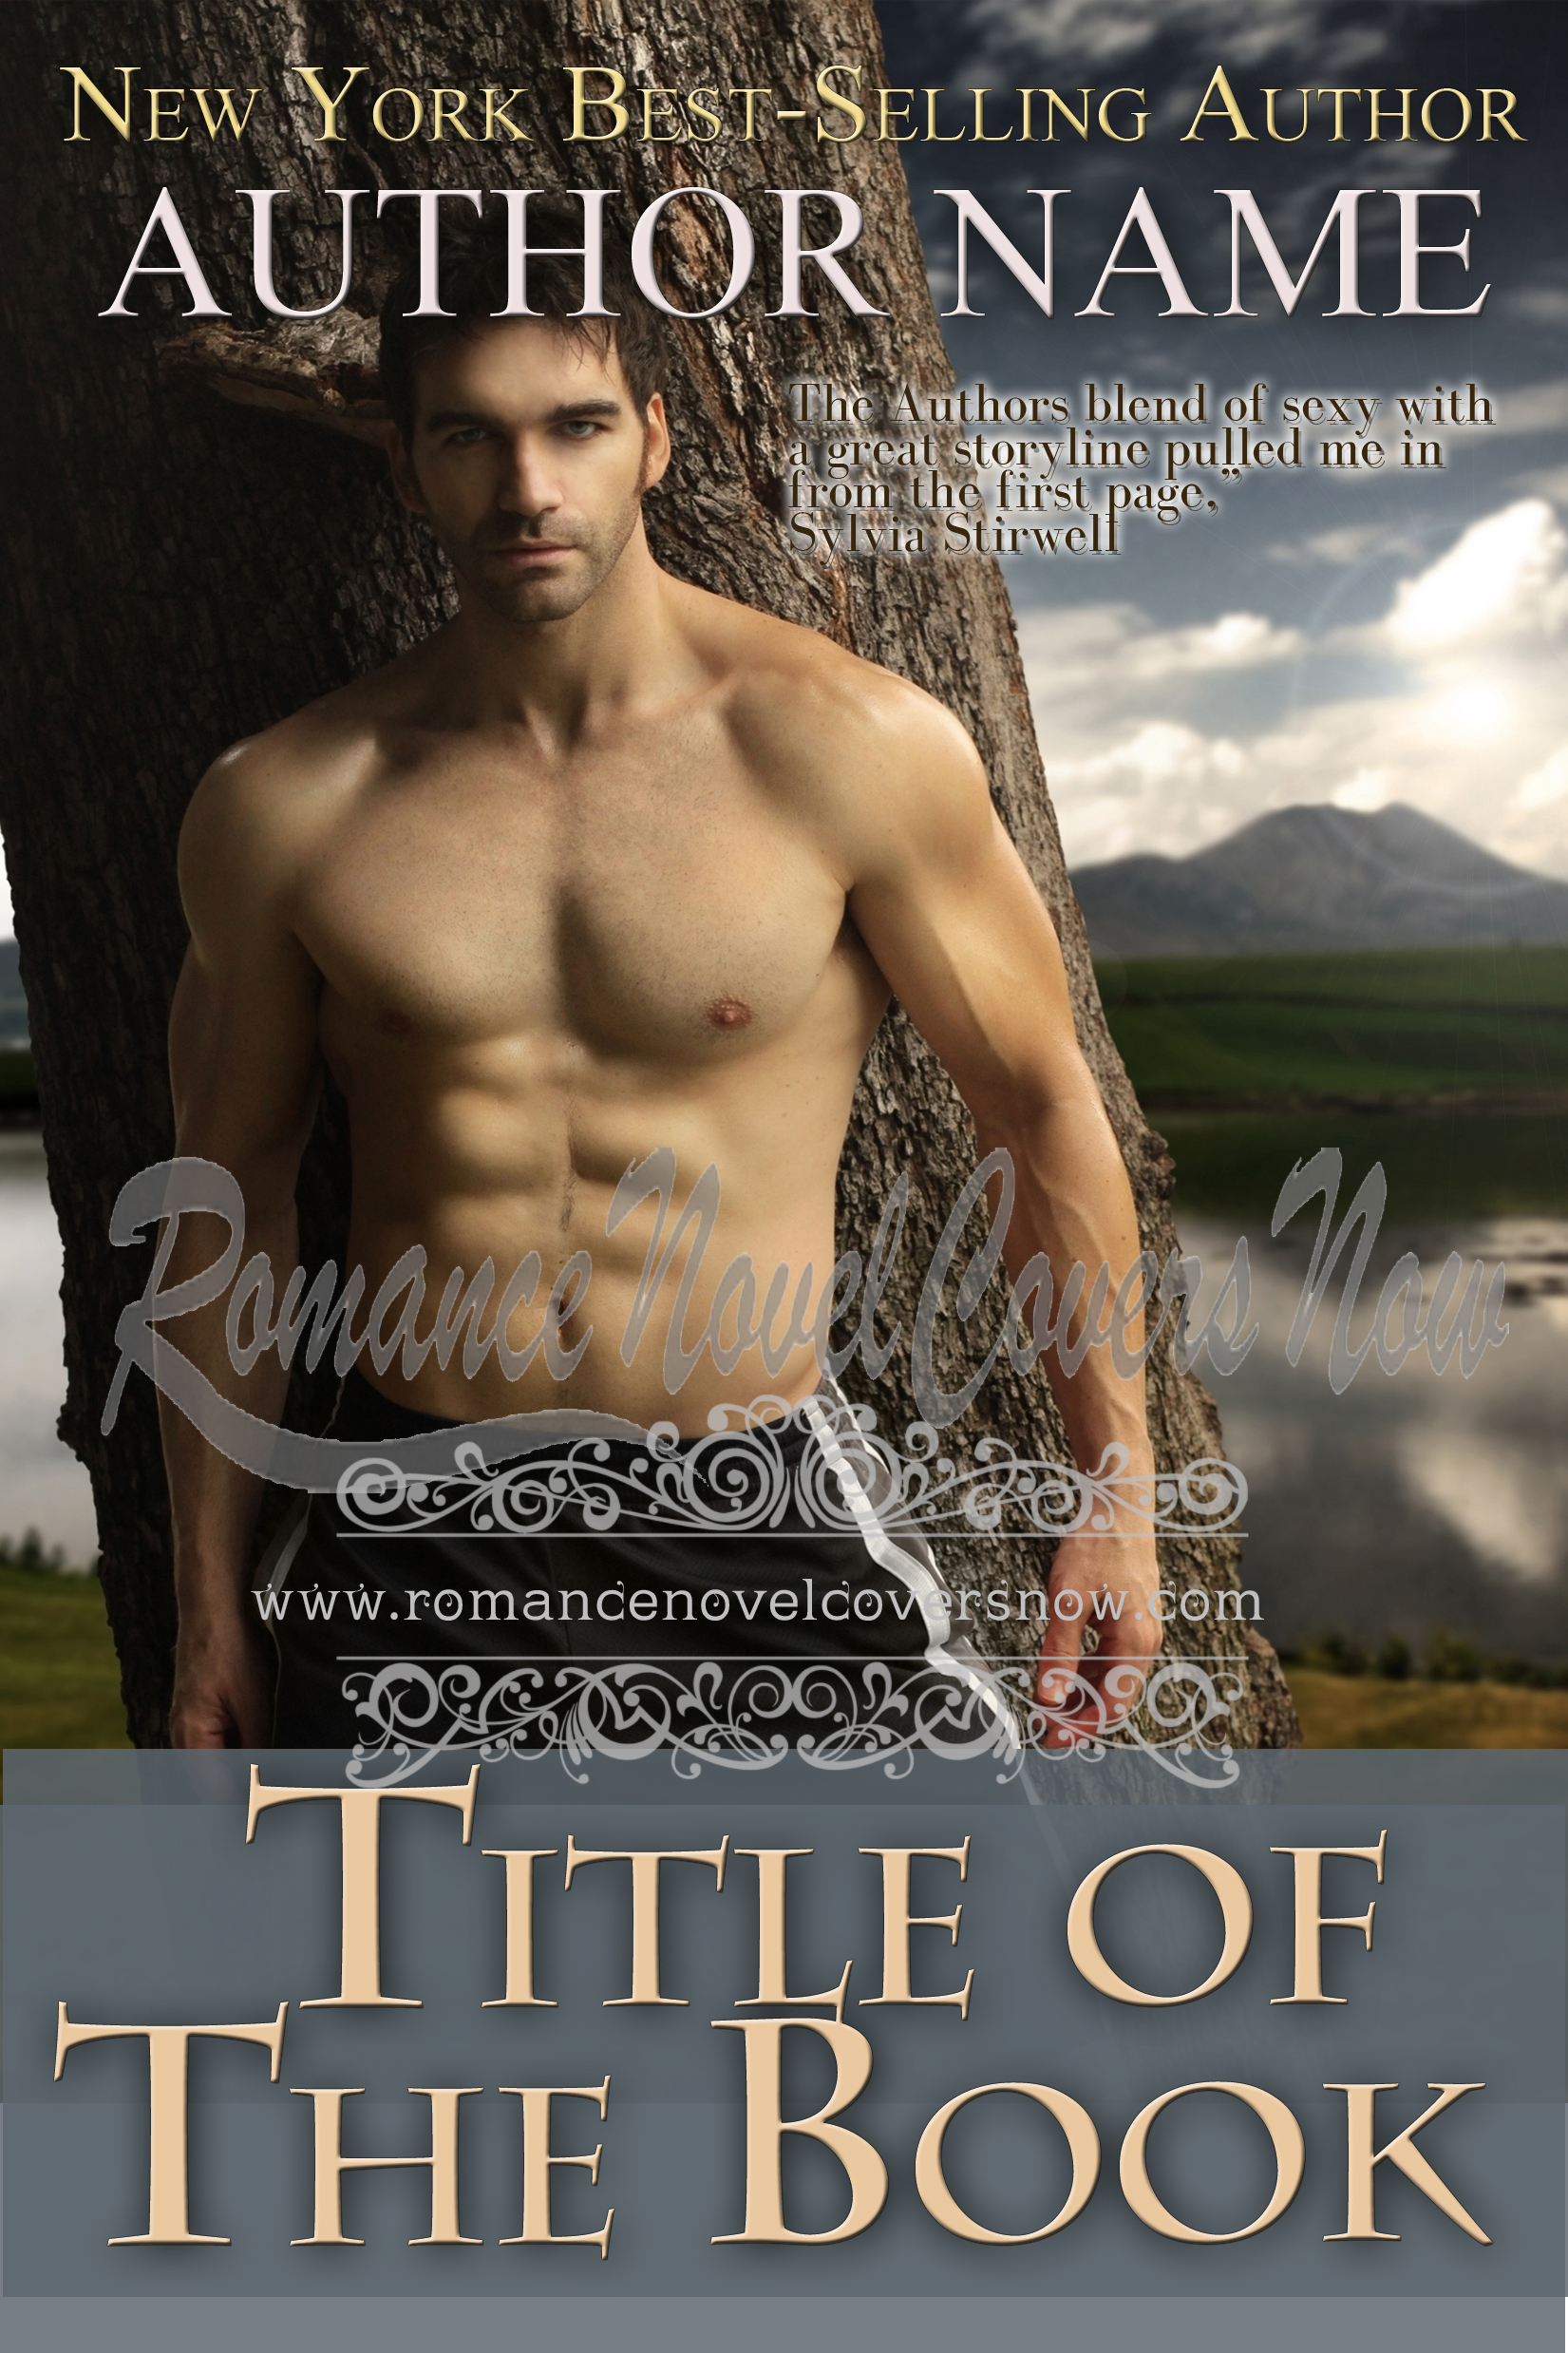 Hot Romance Book Covers : Single and sexy covers romance novel now